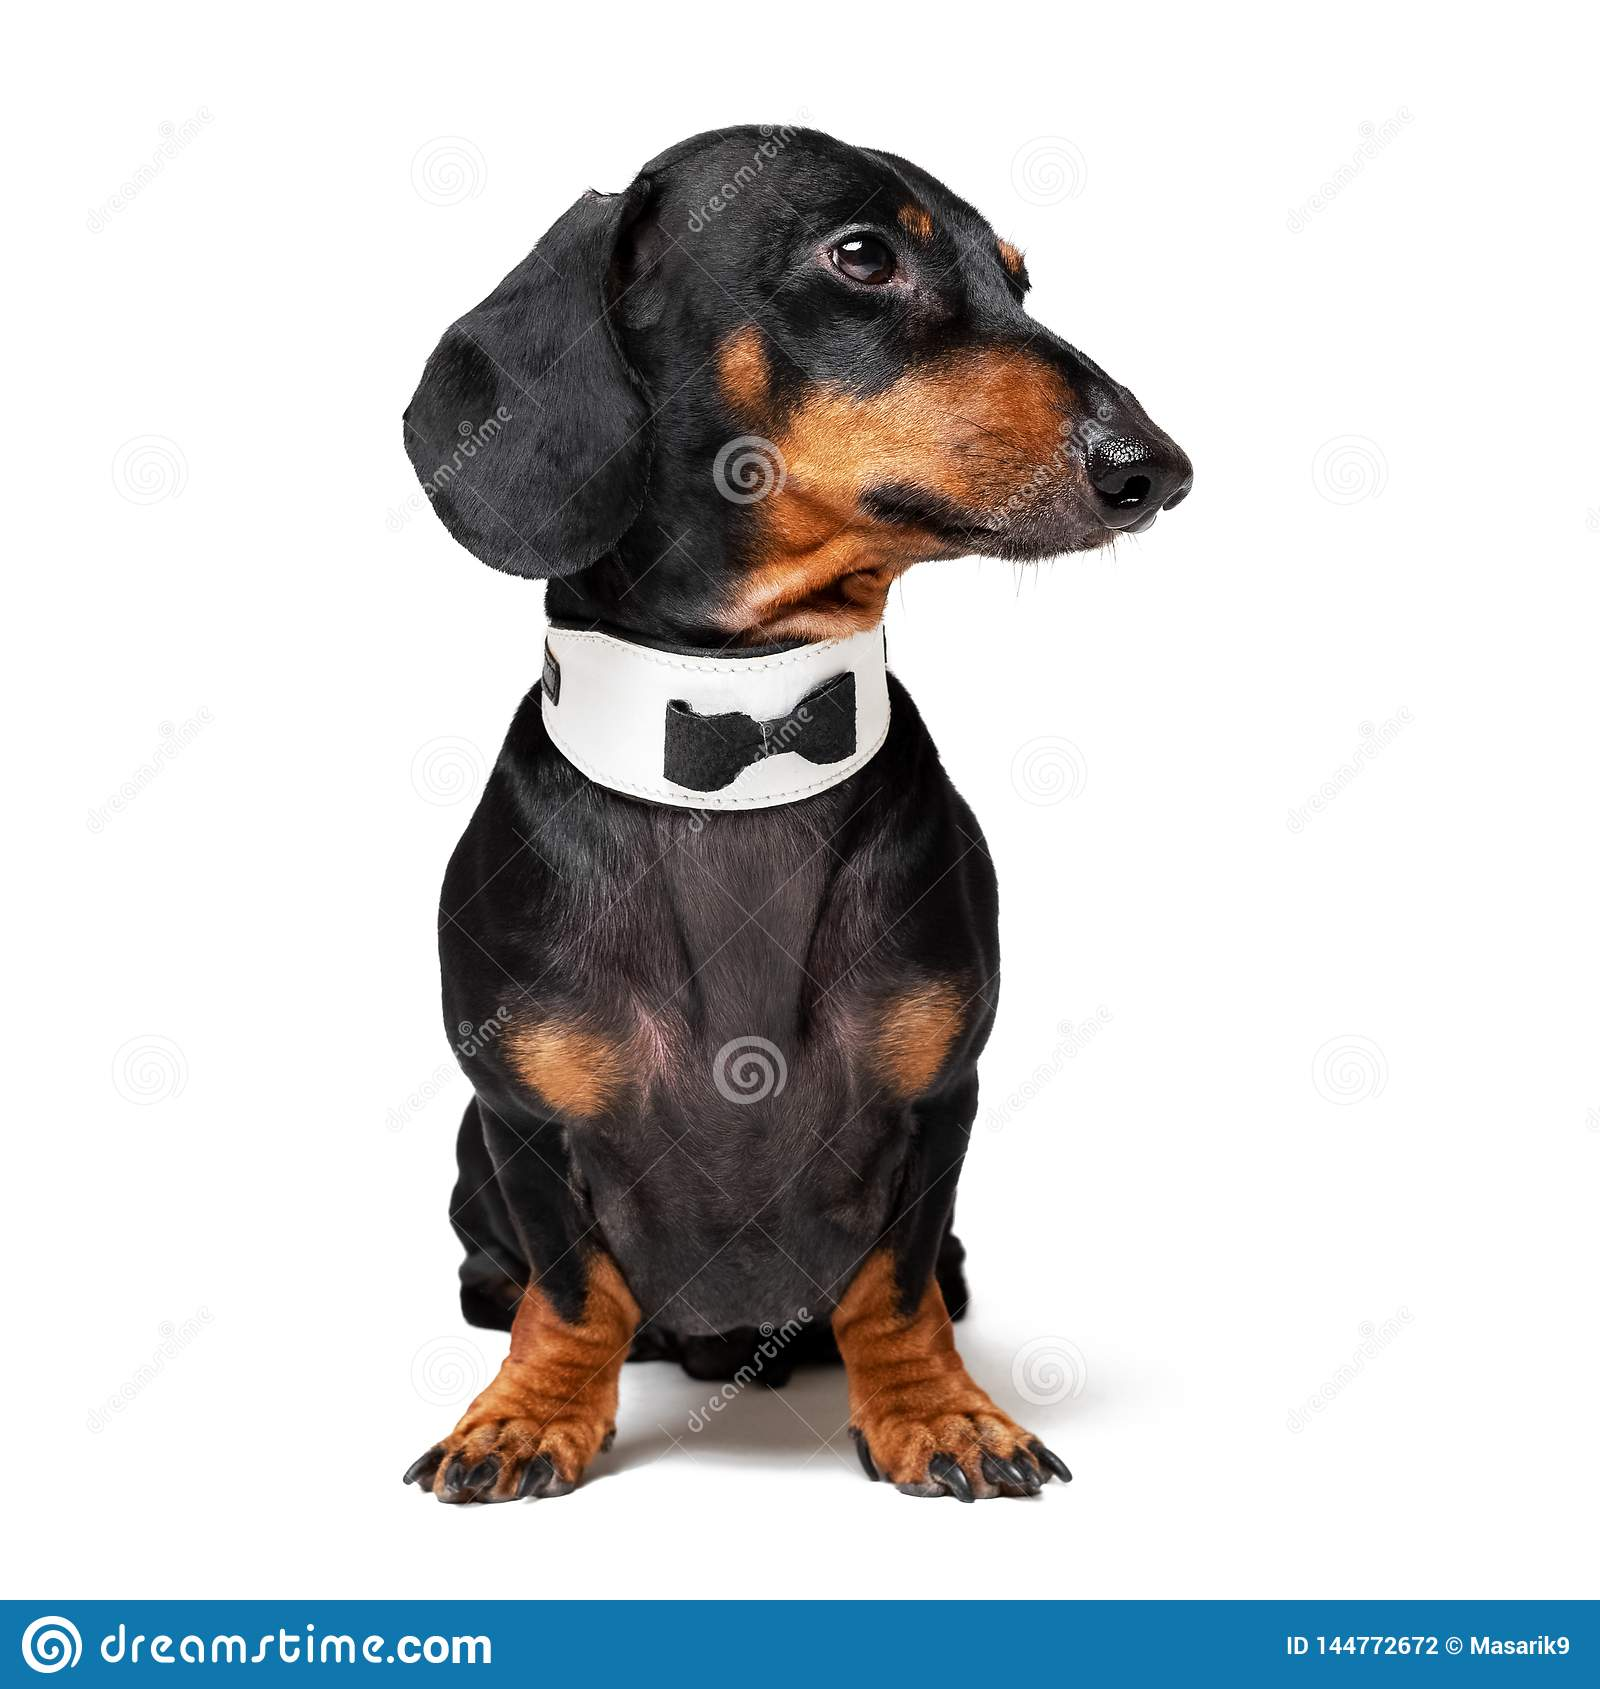 Portrait of cute dog, dachshund, black and tan, wearing  bow tie, isolated on white background